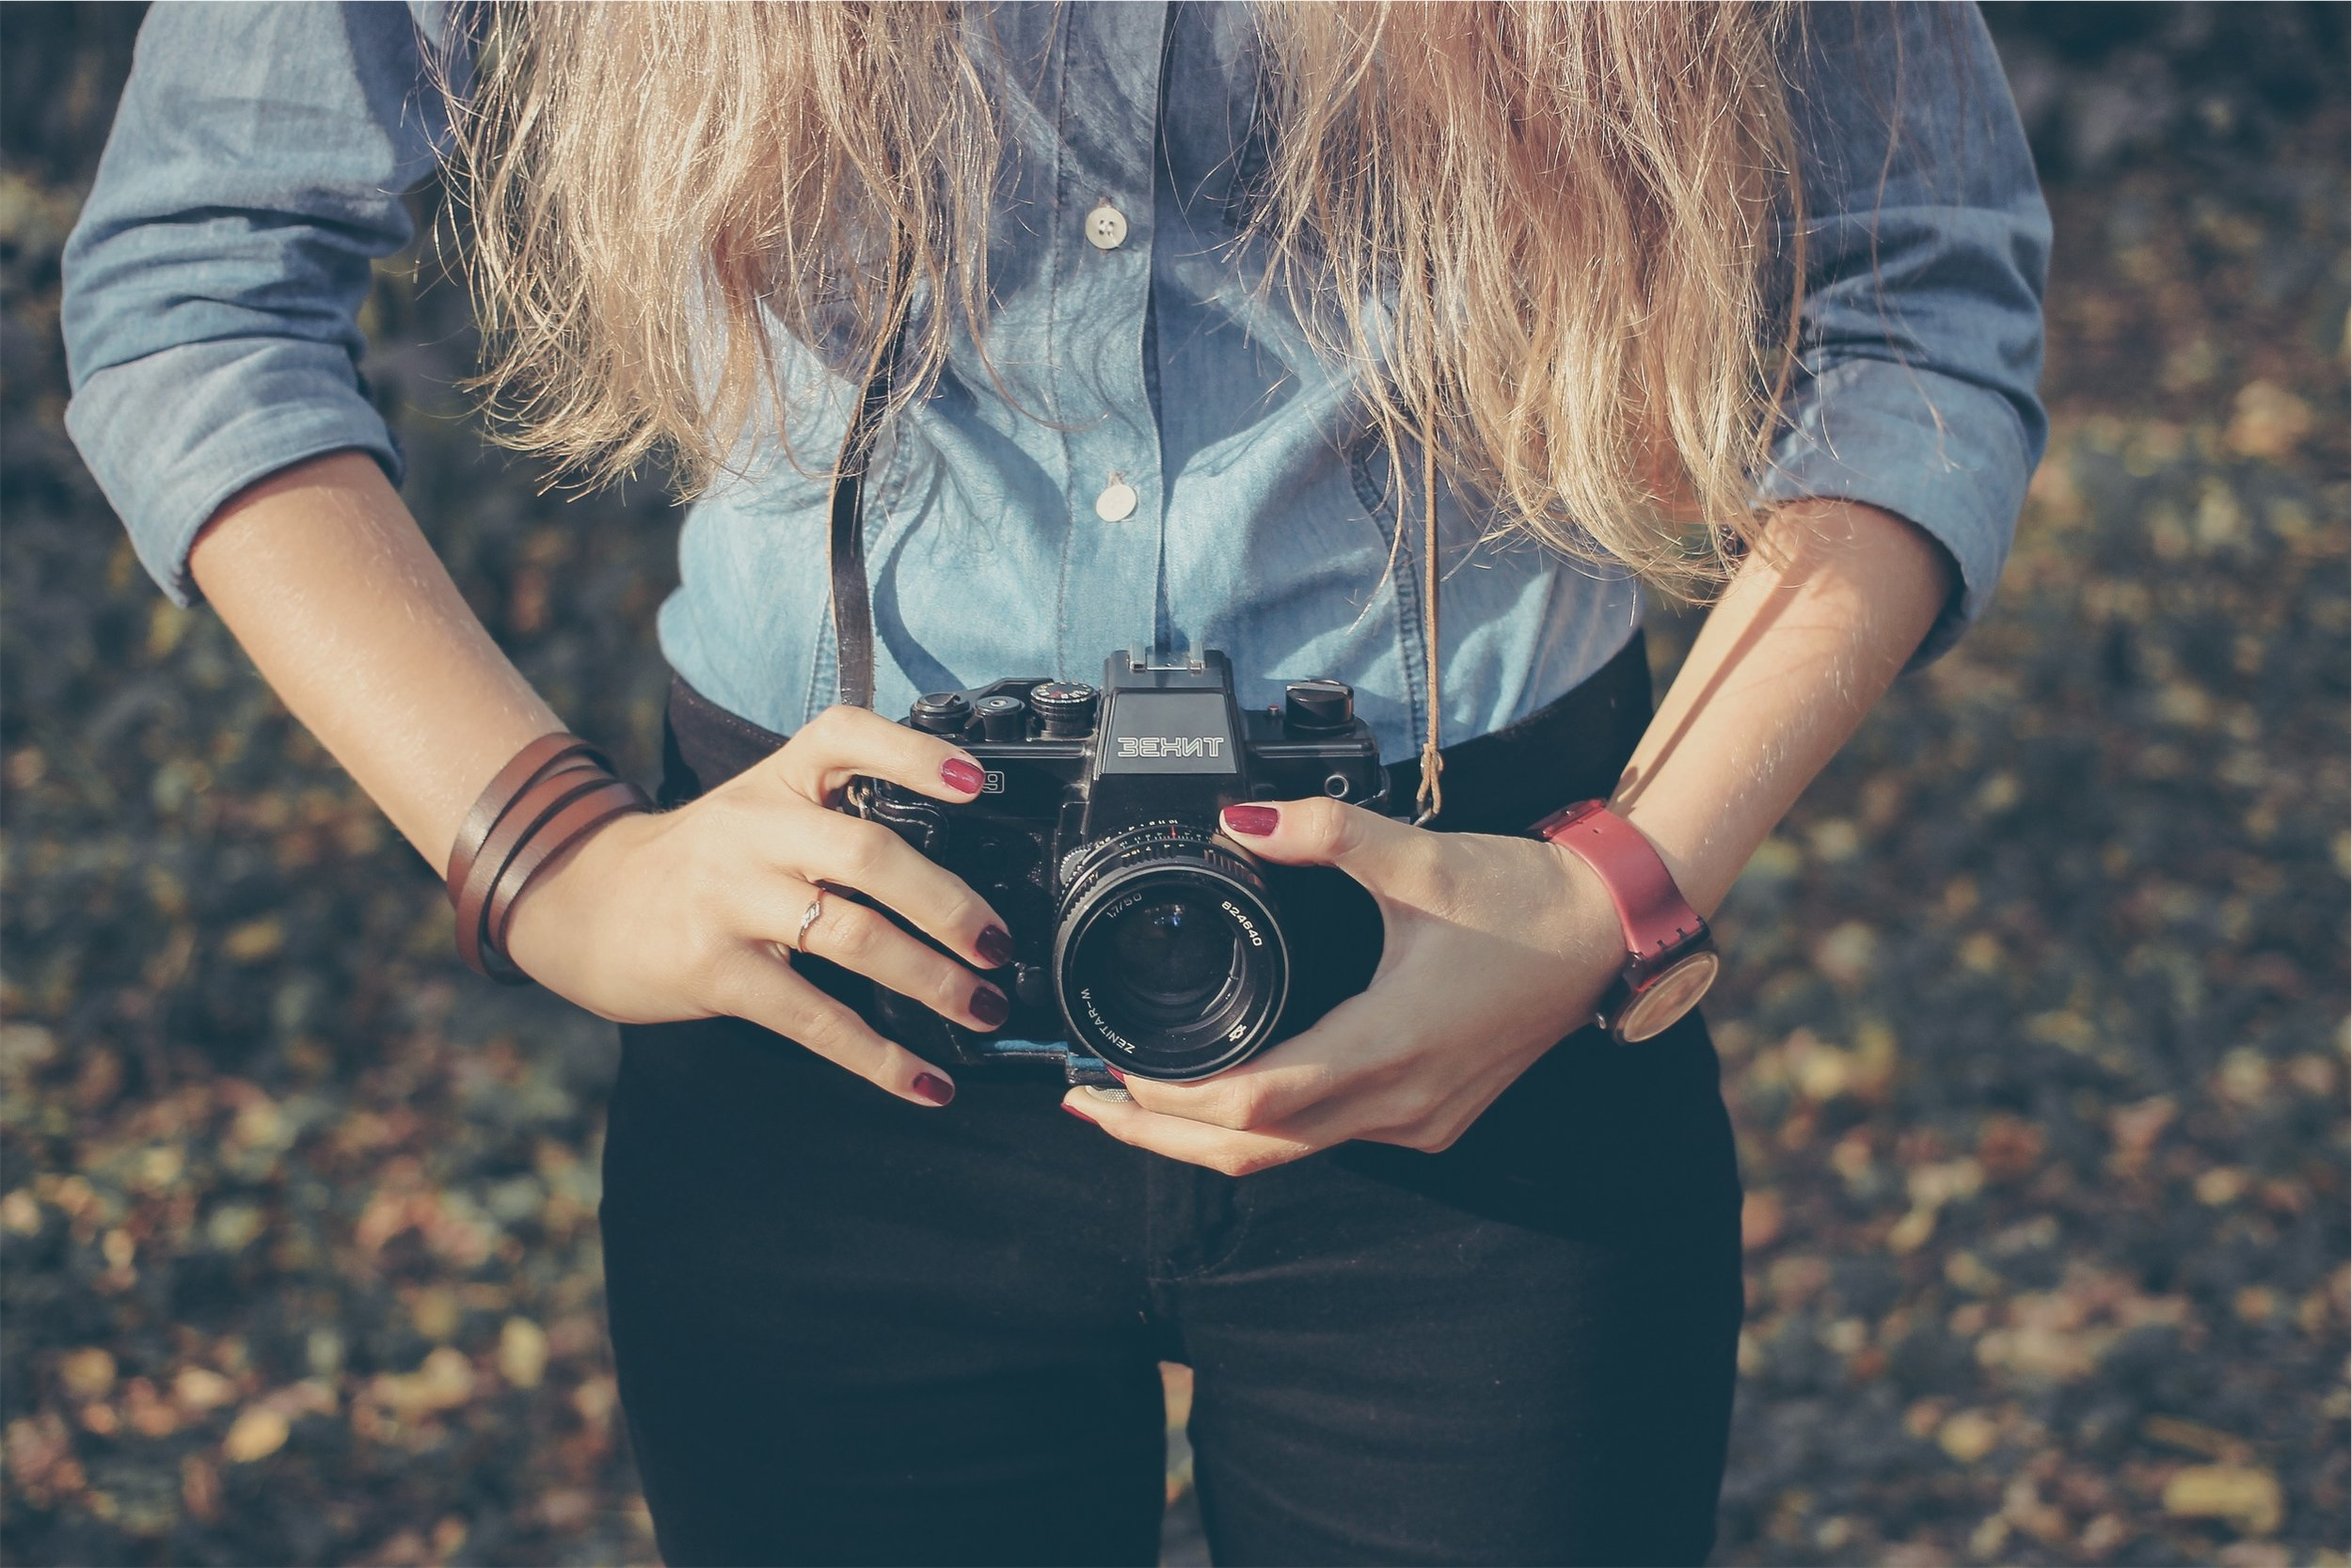 girl-with-camera.jpg